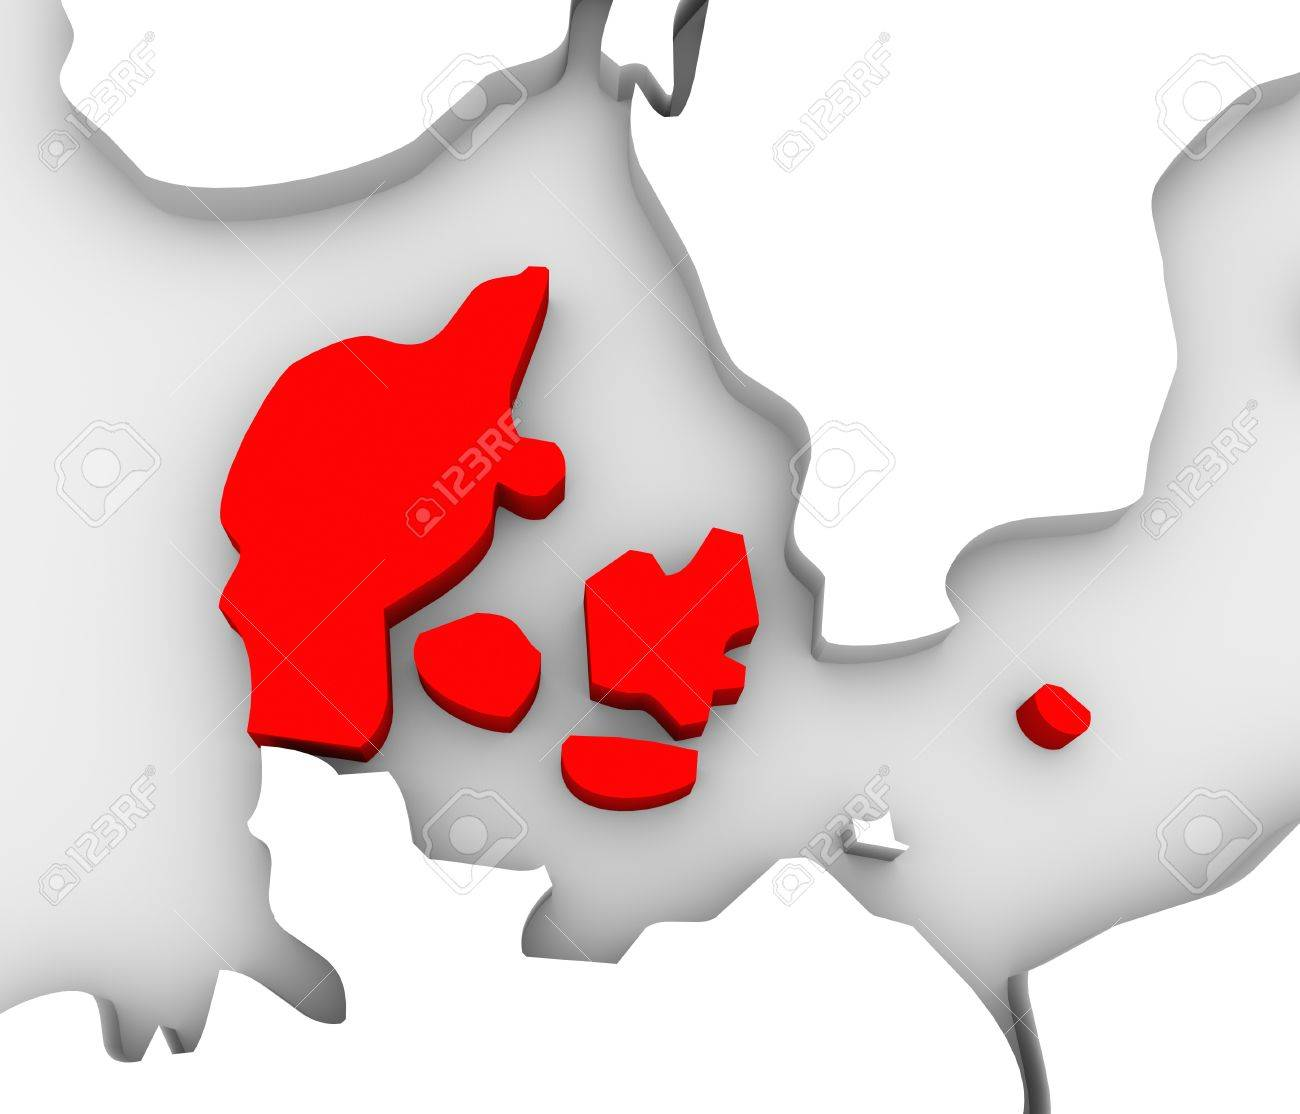 An illustrated 3d abstract map of northern Europe continent and Scandanavian countries with the country of Denmark highlighted in red Stock Photo - 19142049